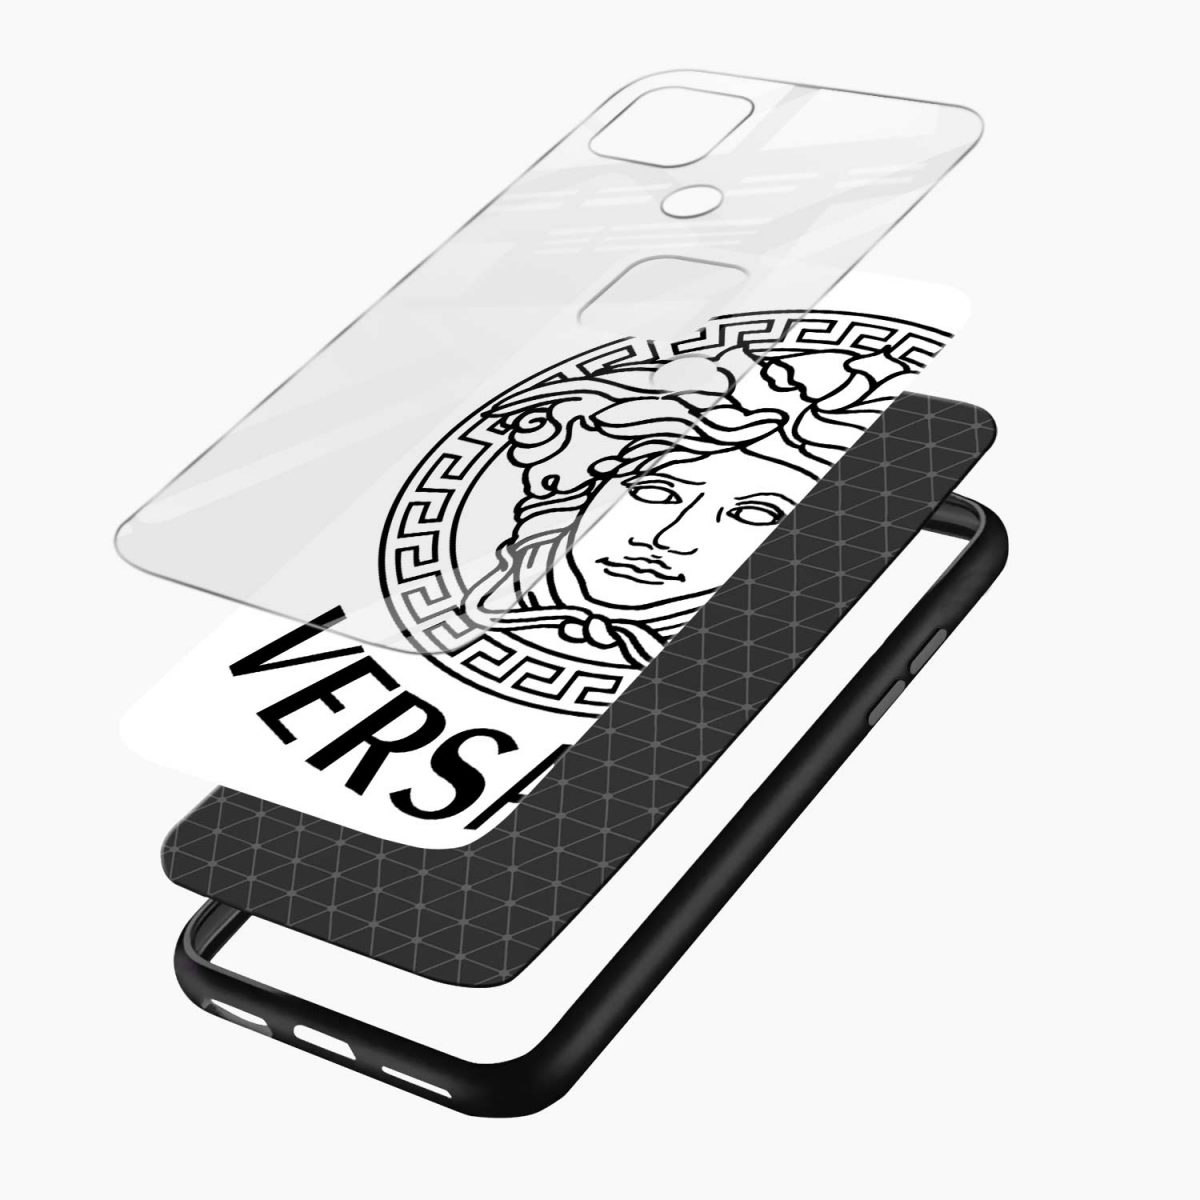 versace black white layers view oppo a15 back cover